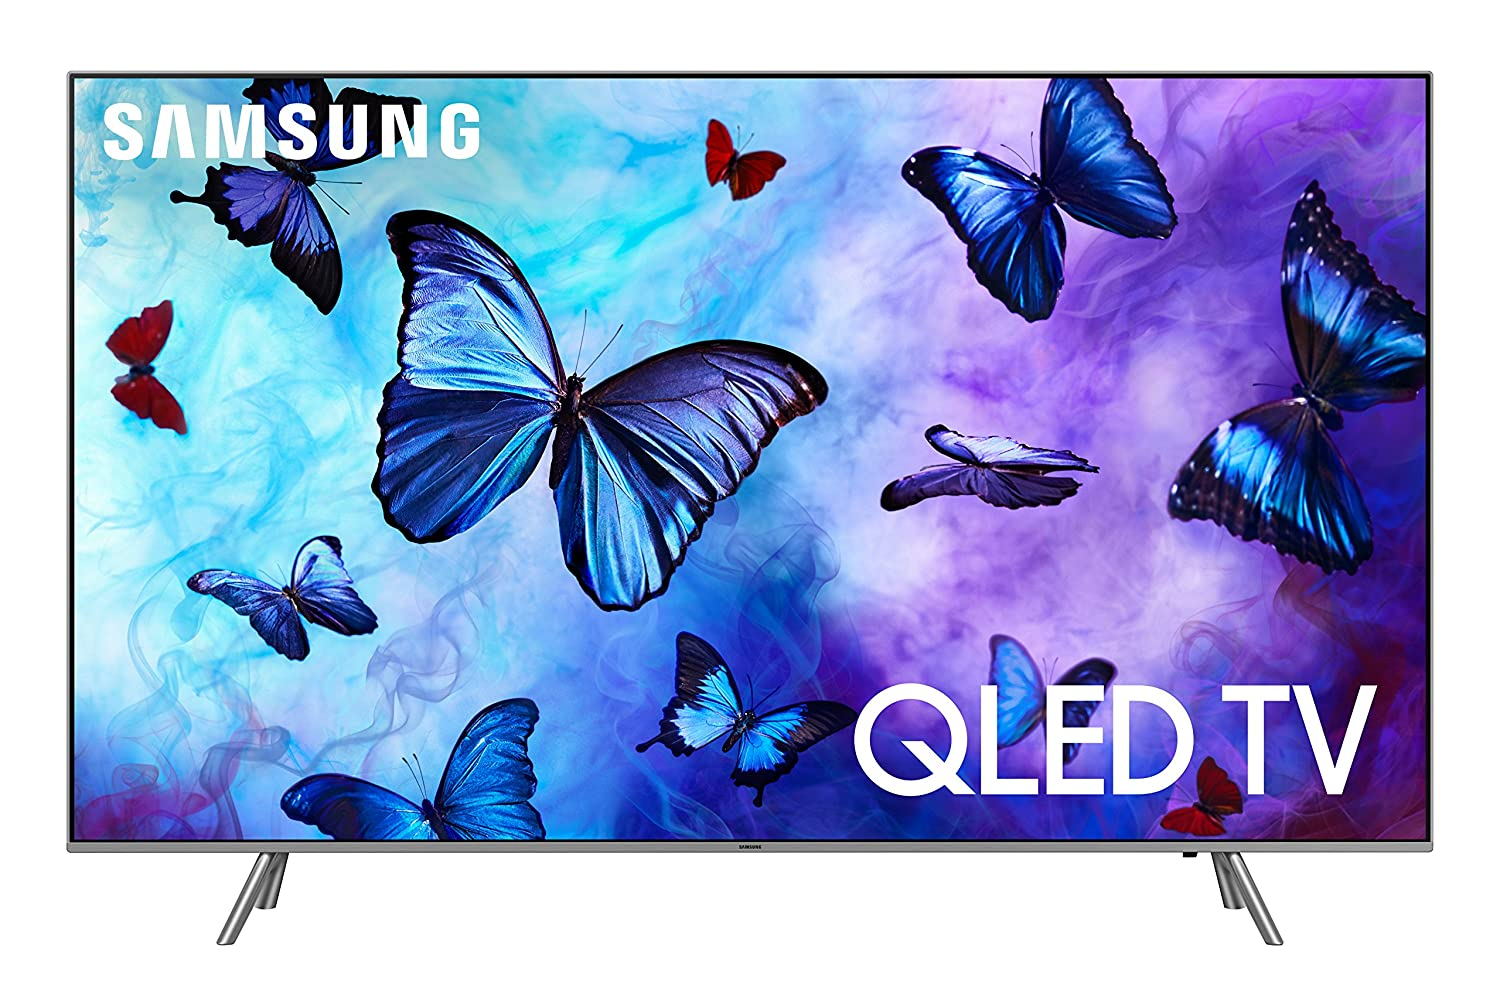 Samsung QN75Q6 Flat 75' QLED 4K UHD 6 Series Smart TV 2018 [US Version] Samsung Child Code for Wireless Accessories QN75Q6FNAFXZA